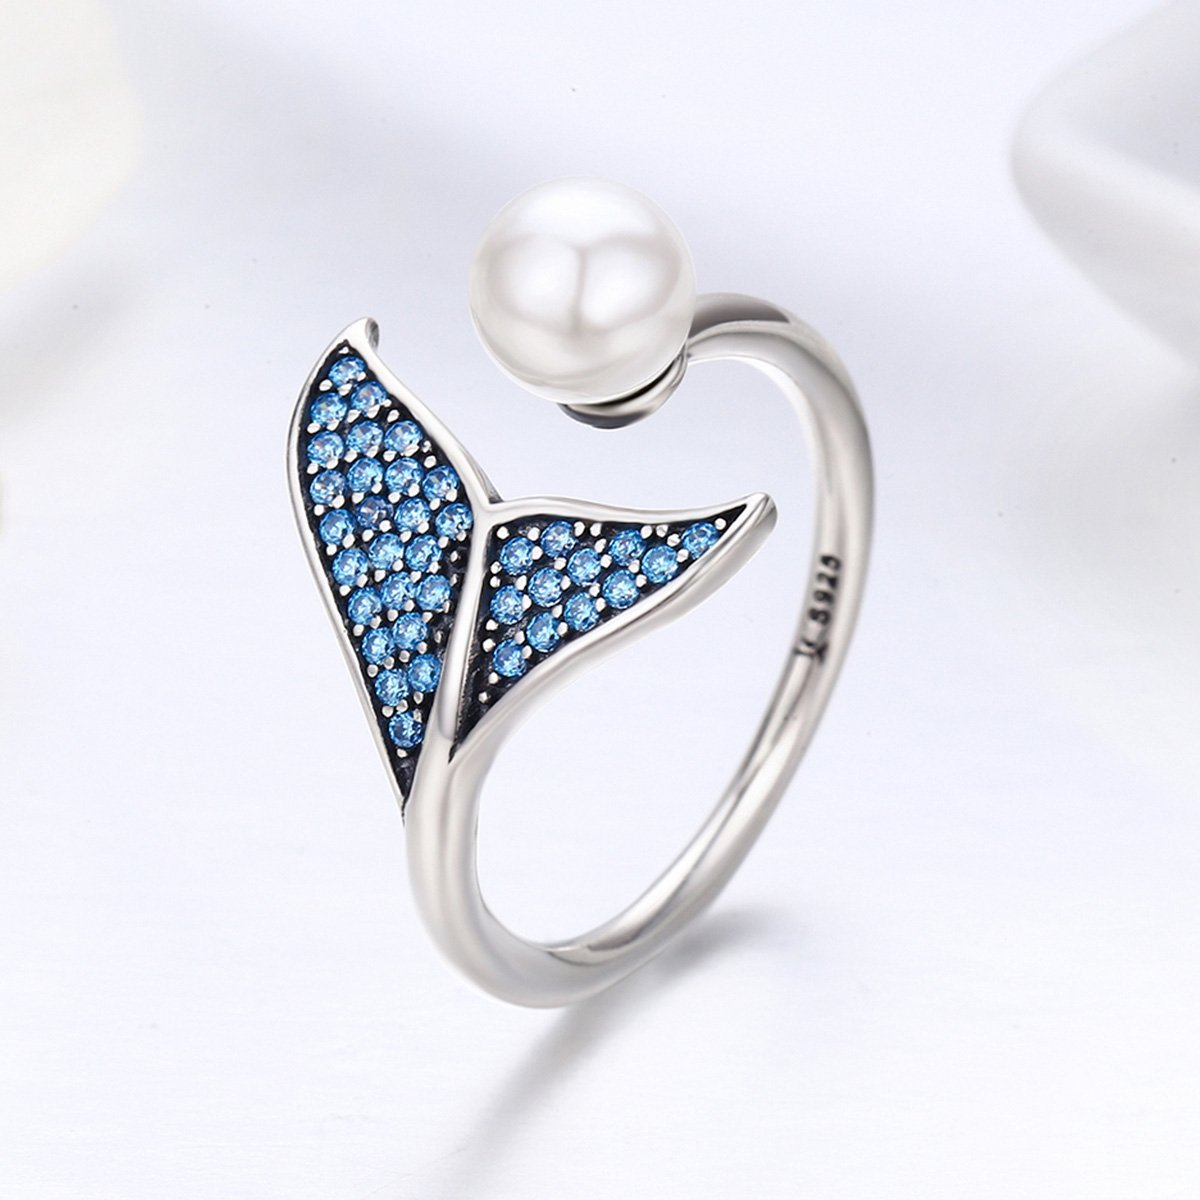 Forever Queen Mermaid Tail Ring, S925 Sterling Silver Dolphin Tail Adjustable Finger Ring for Women Girls Open Ring with Blue Cubic Zirconia& Shell Pearl BJ09067 by Forever Queen (Image #1)